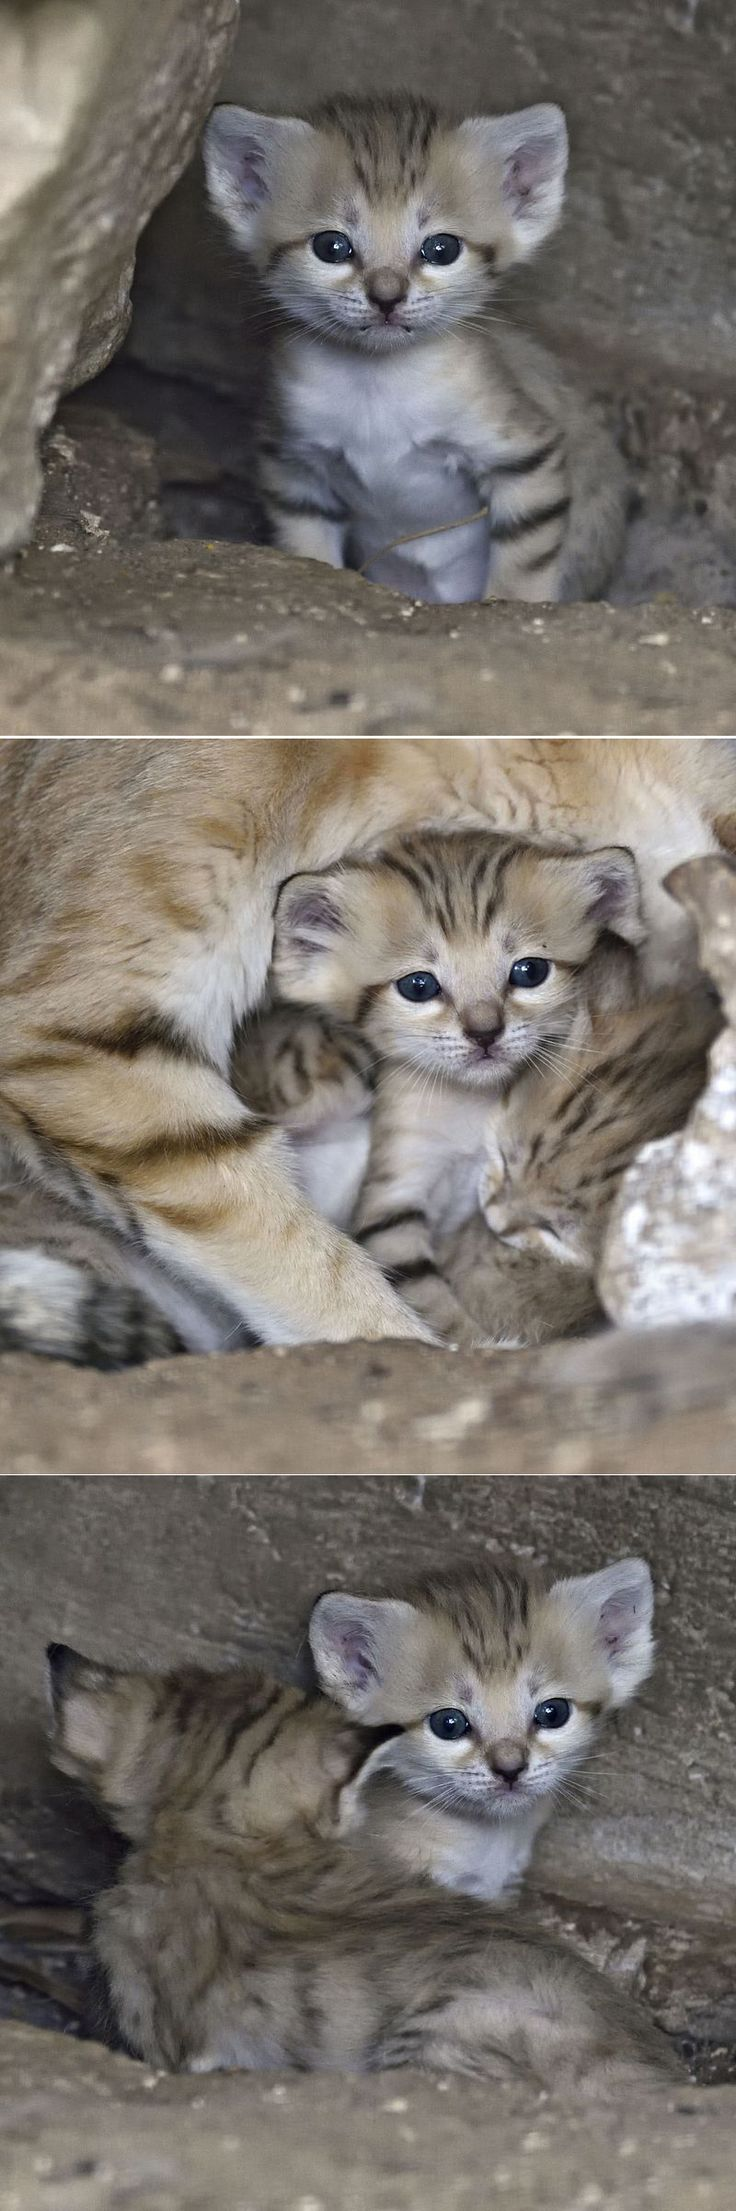 Israel's Sand Cat Kittens Back By Popular Demand.